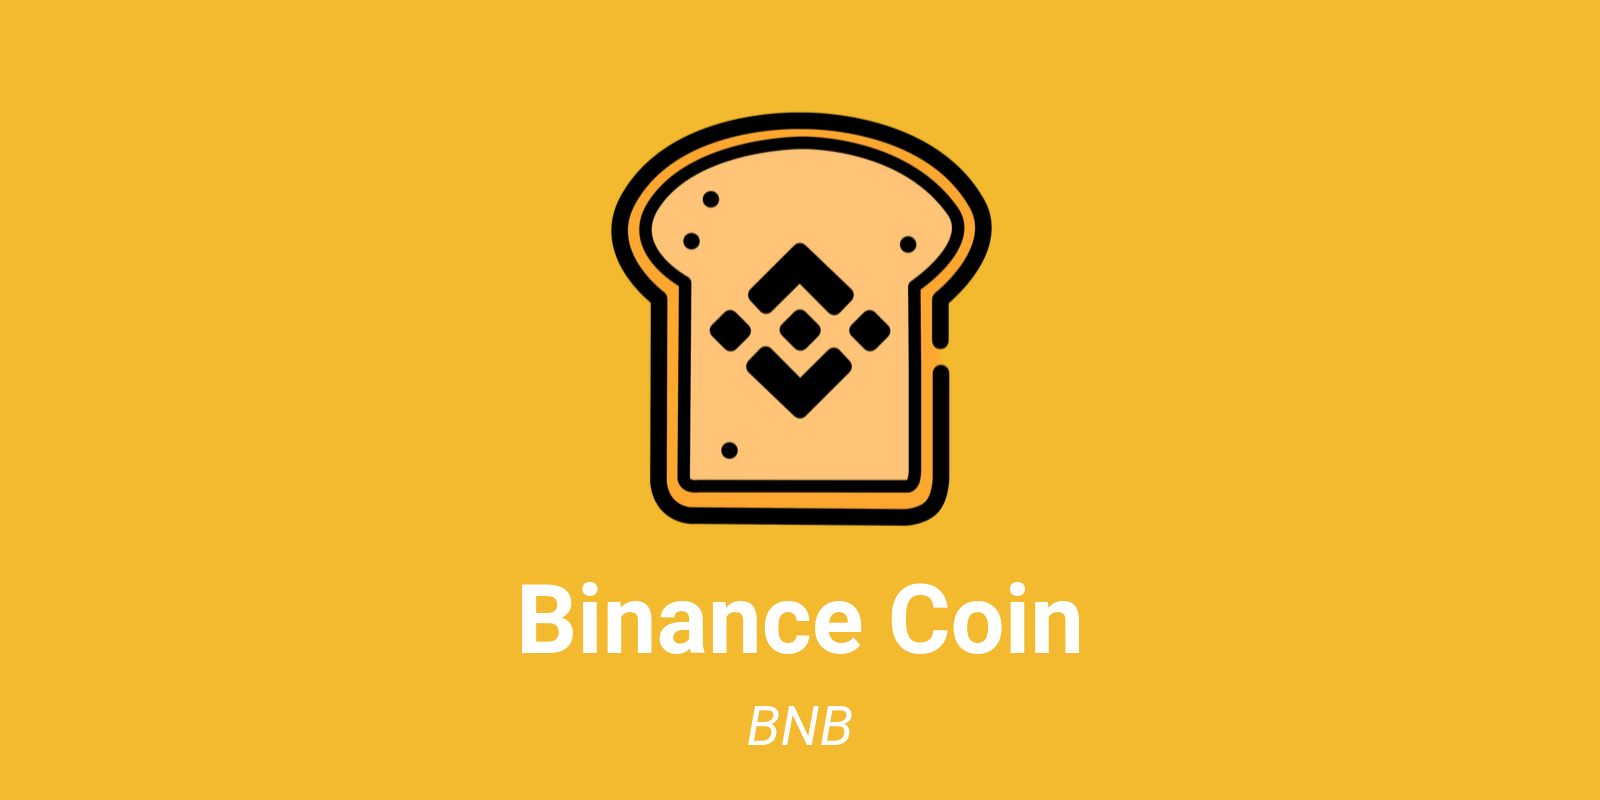 Binance coin cryptomonnaie